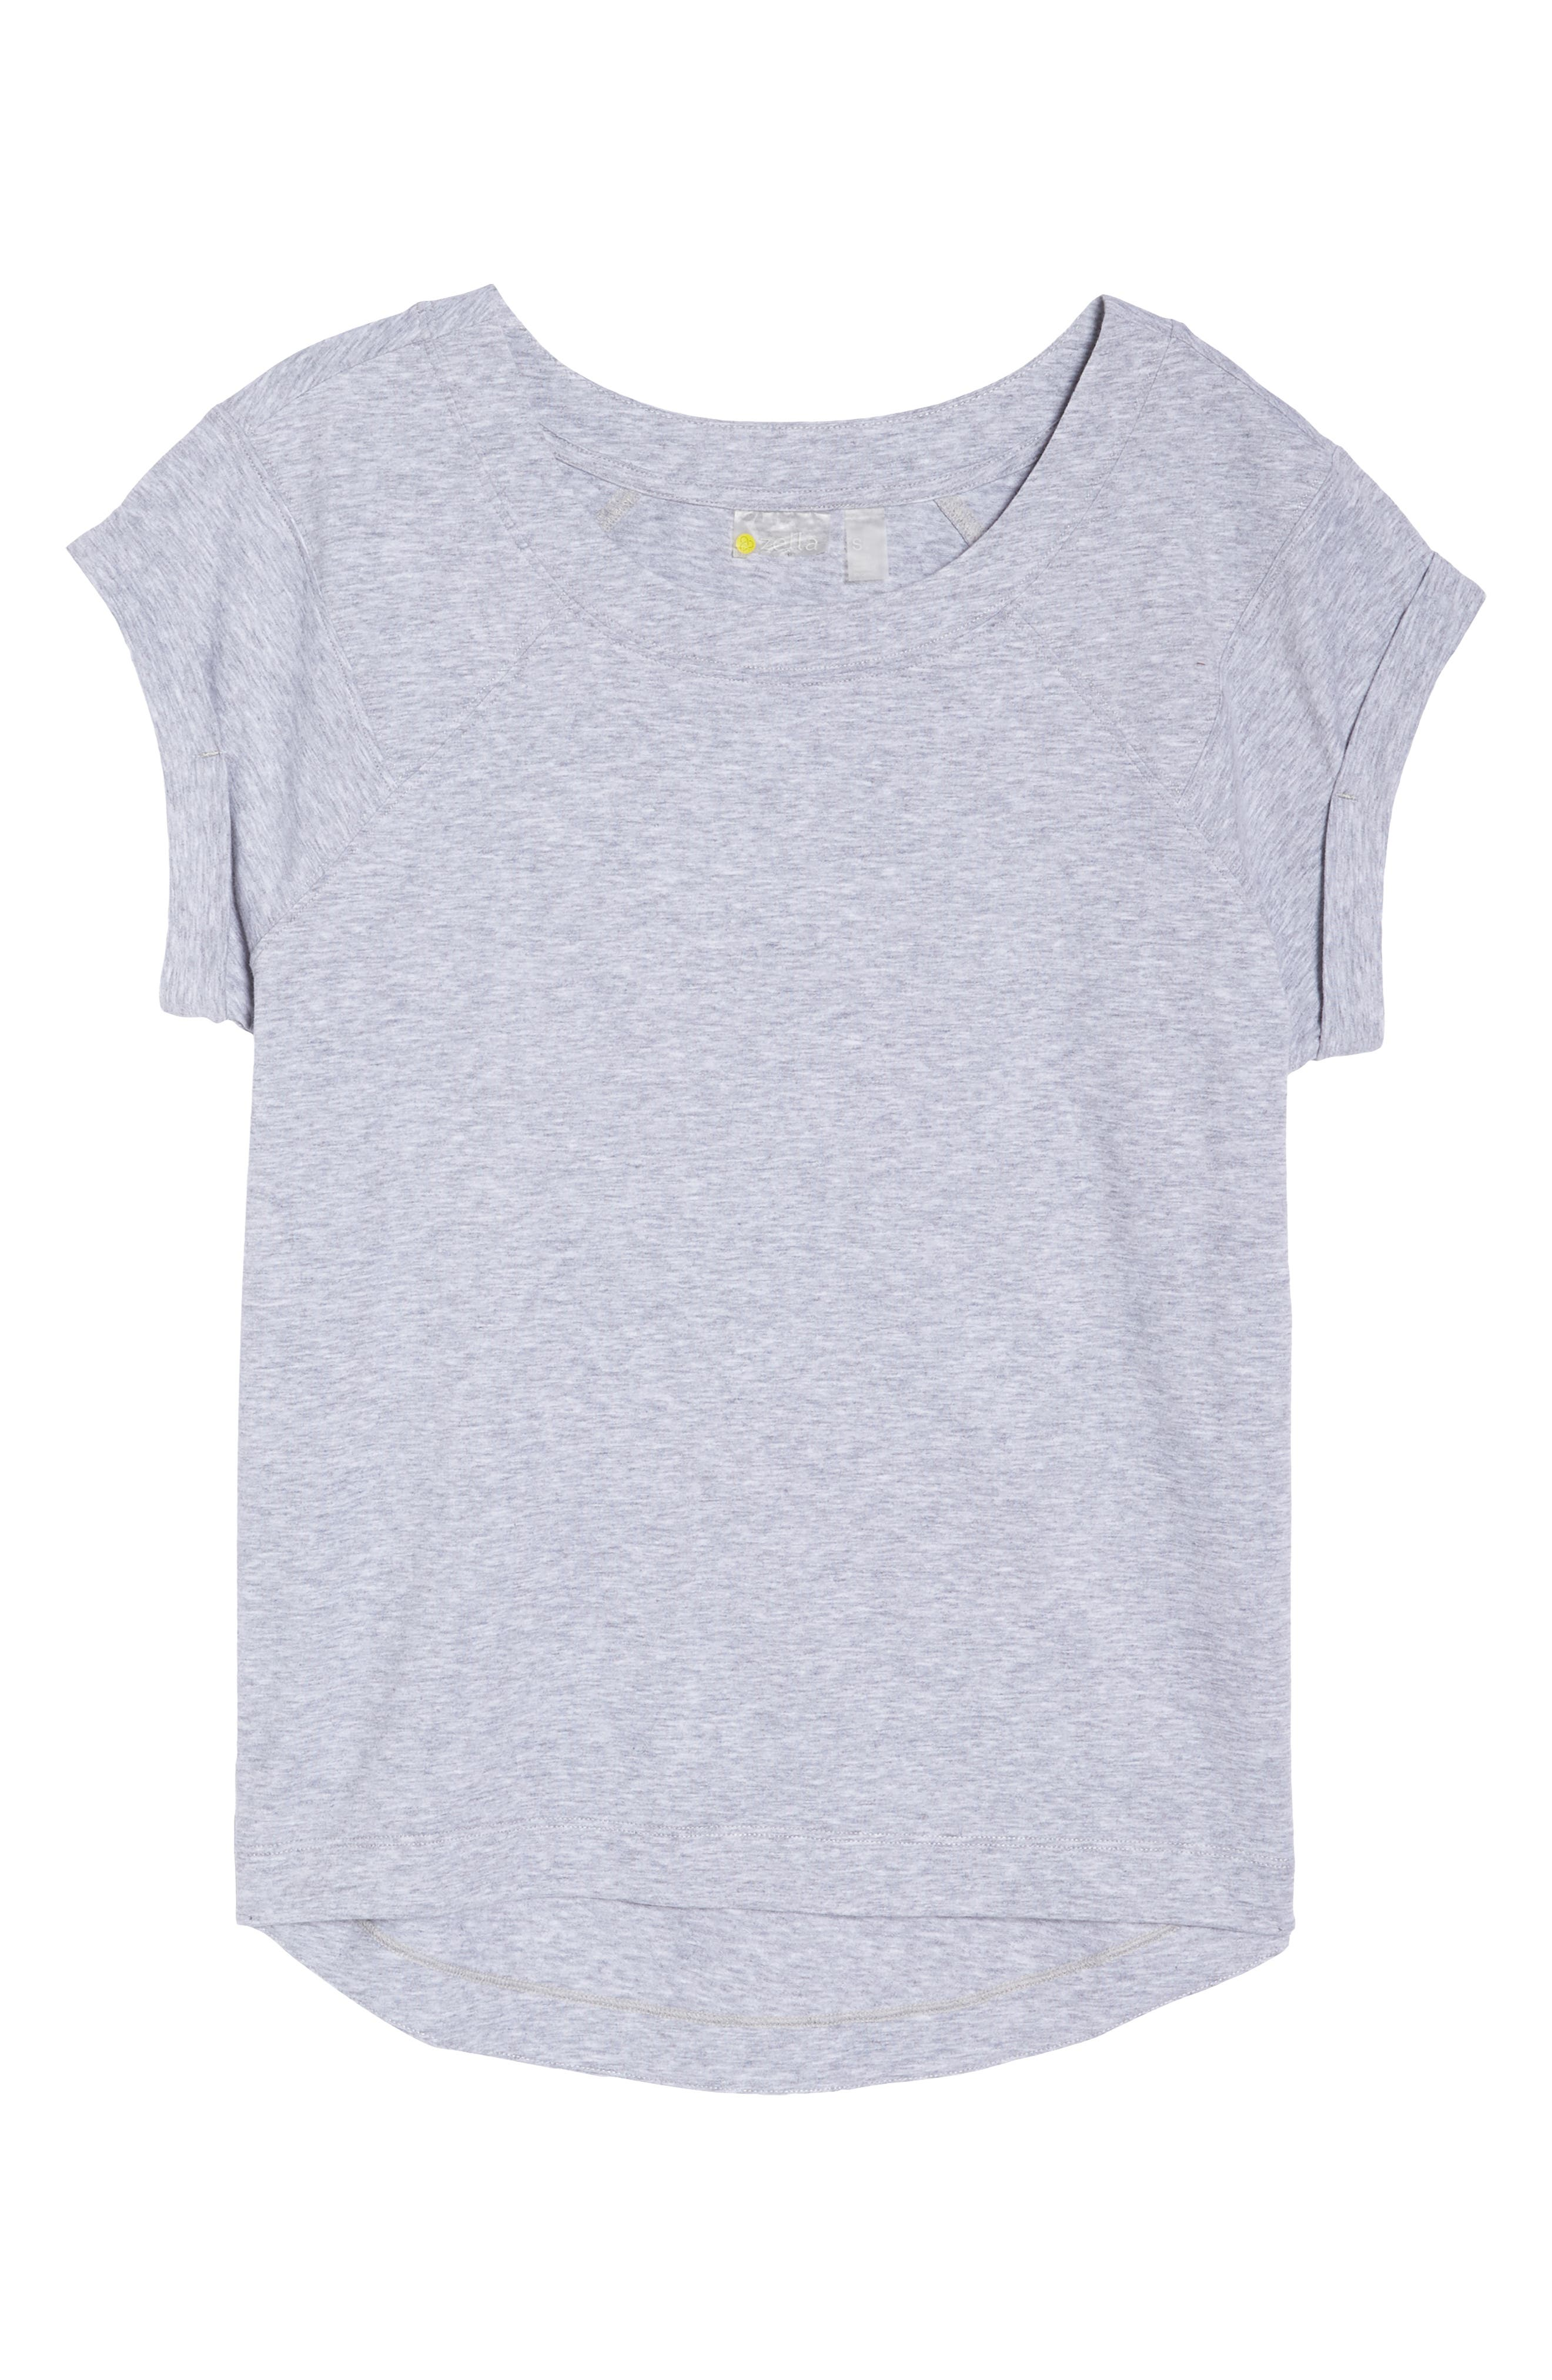 Karly Tee,                             Alternate thumbnail 7, color,                             GREY QUIET HEATHER